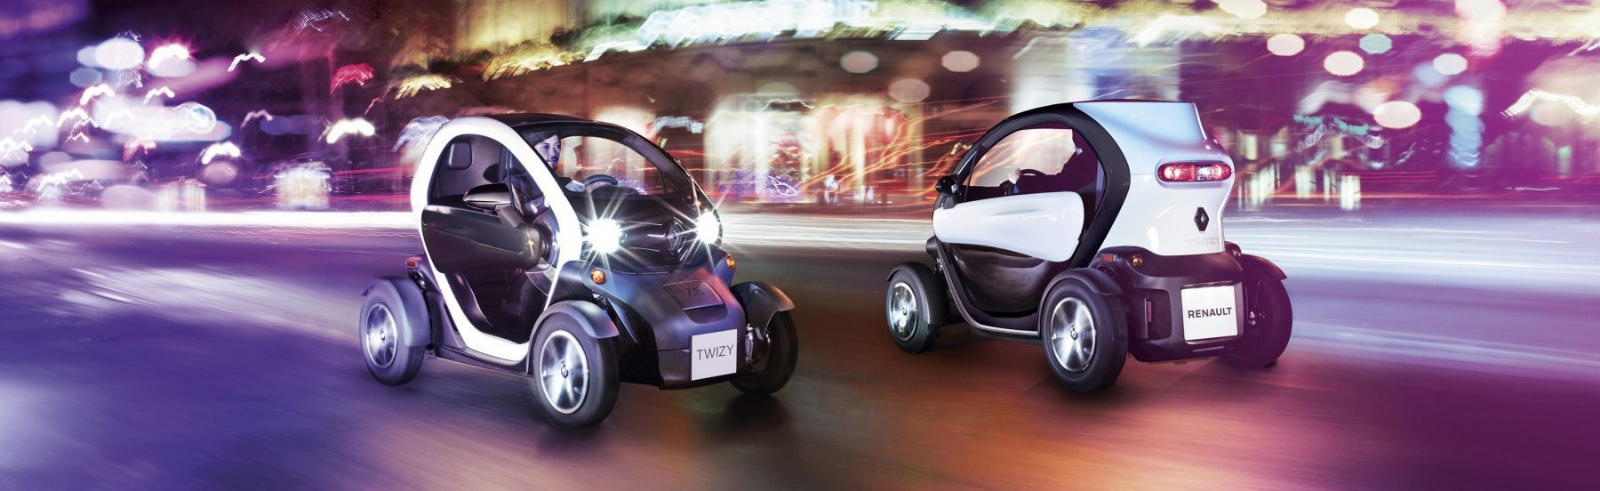 New Renault Twizy